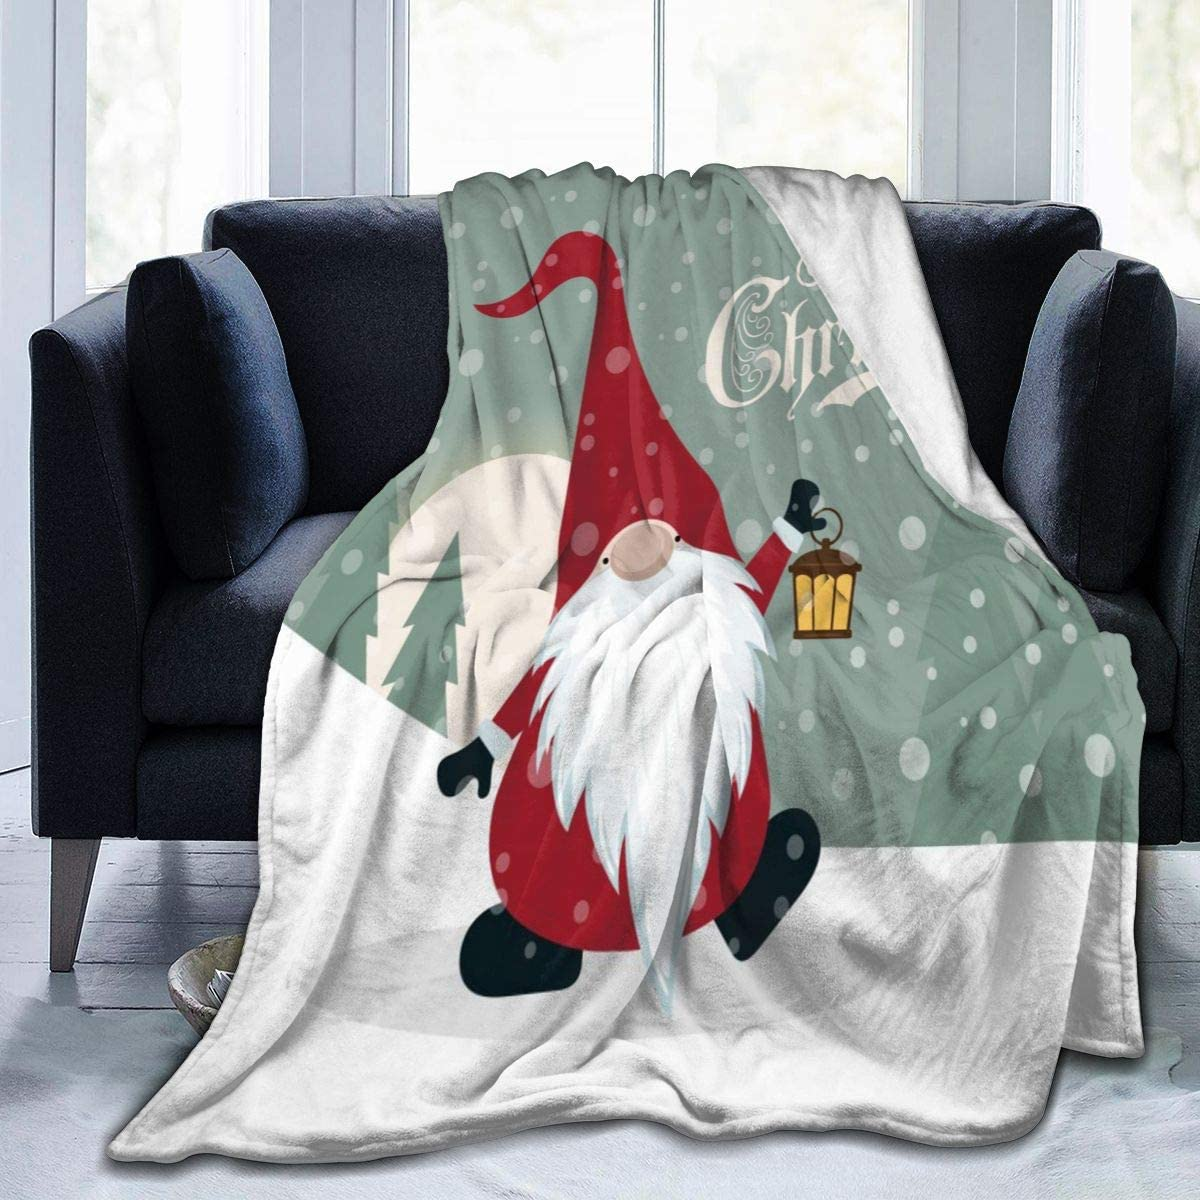 Gift For Christmas Quilt Blanket Let It Snow Gnome Christmas Blanket